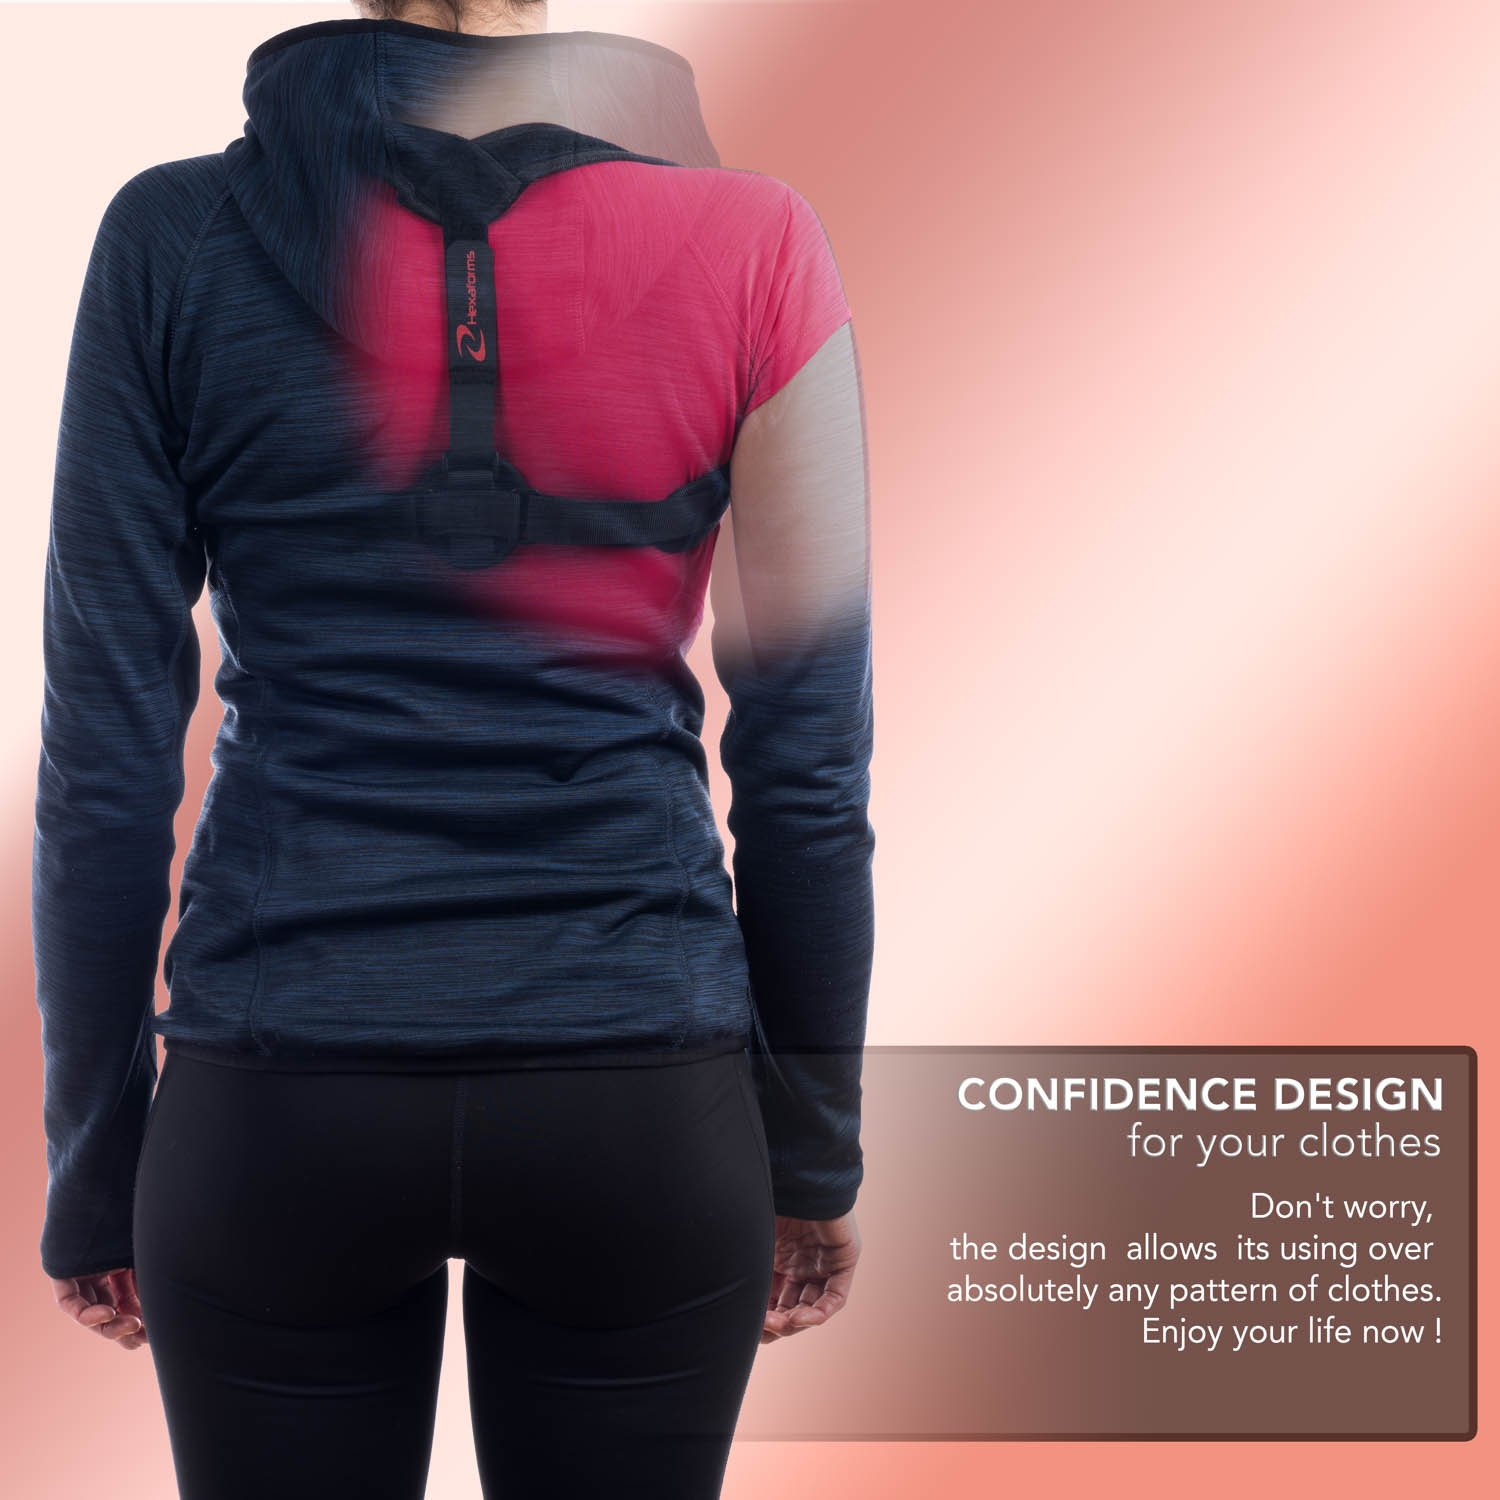 Hexaforms Back Posture Corrector for Women & Men - Effective and Comfortable Posture Brace for Slouching and Hunching - Clavicle Support for Upper Back & Shoulder Pain Relief - Medical Problems by Hexaforms (Image #4)